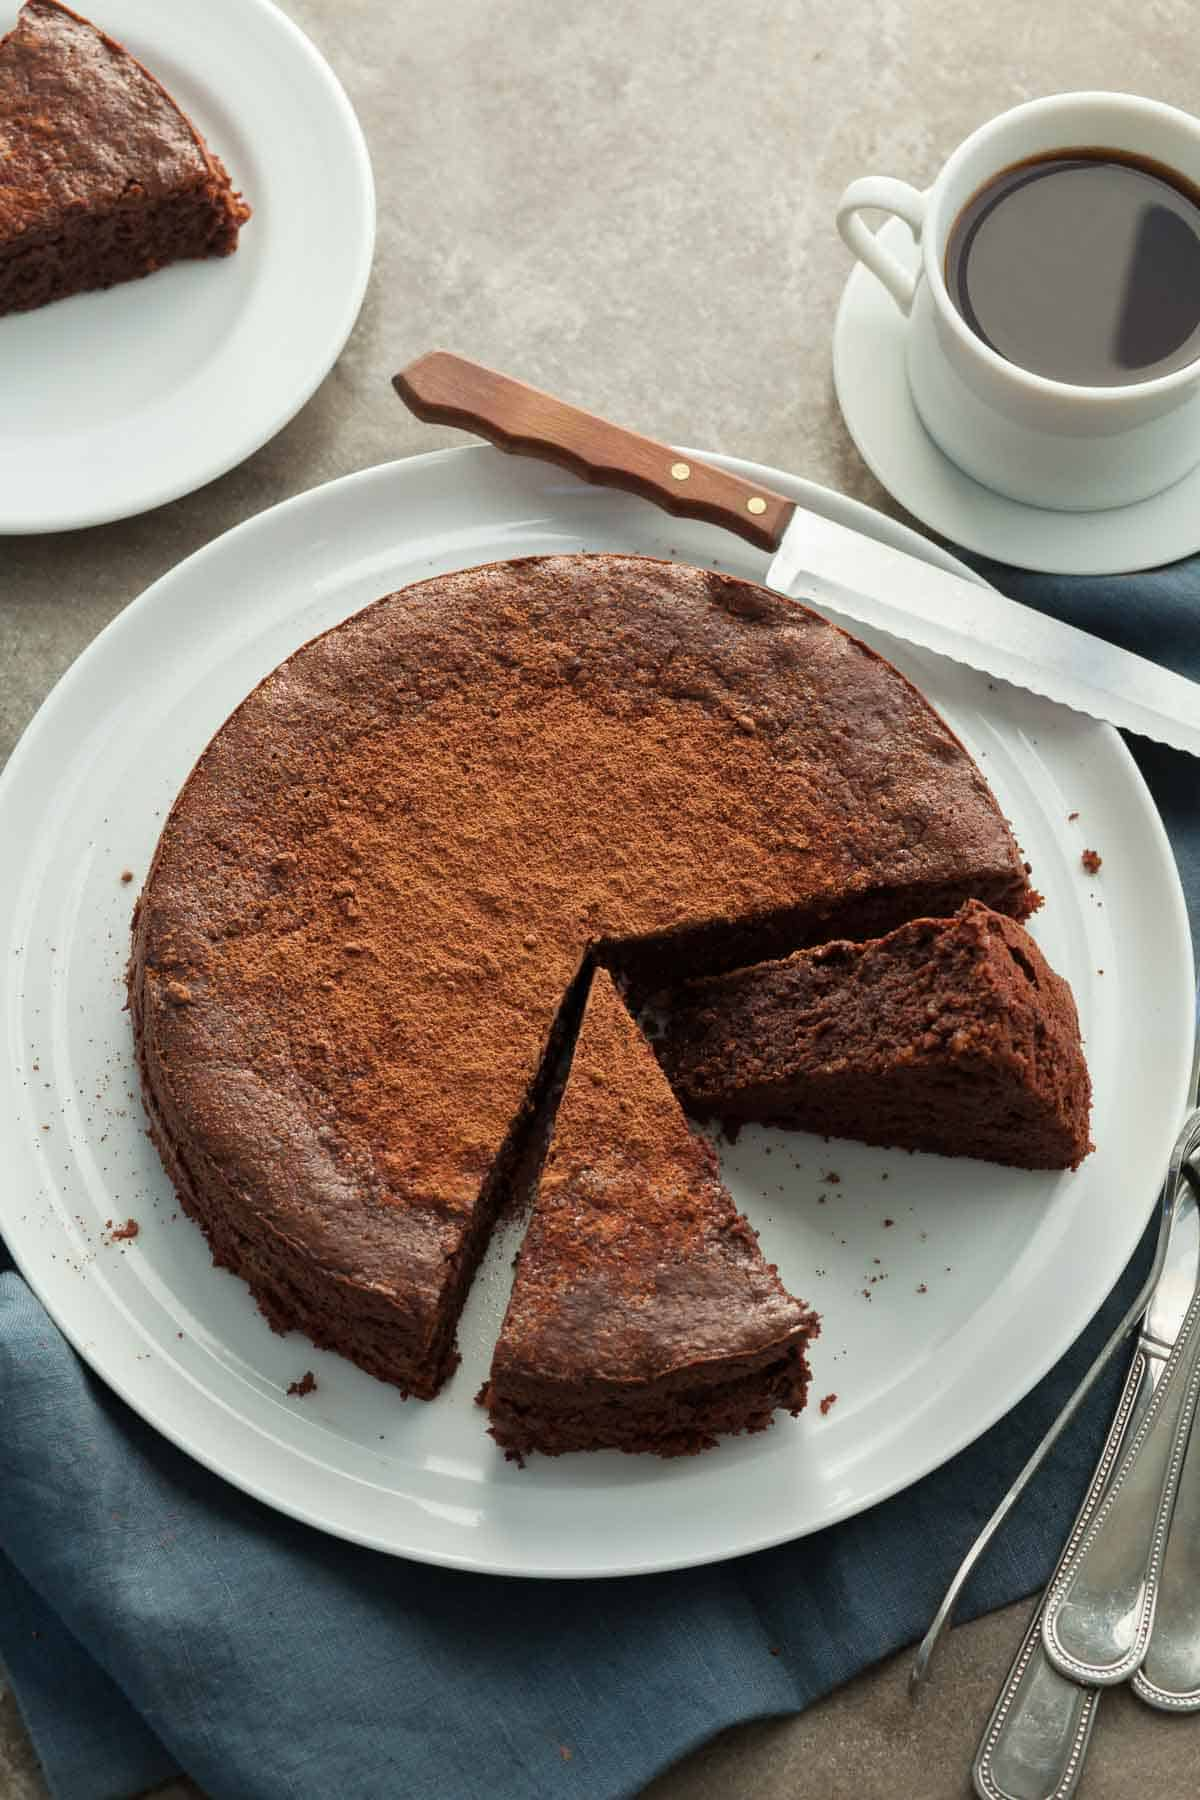 How To Make The Perfect Flourless Chocolate Cake